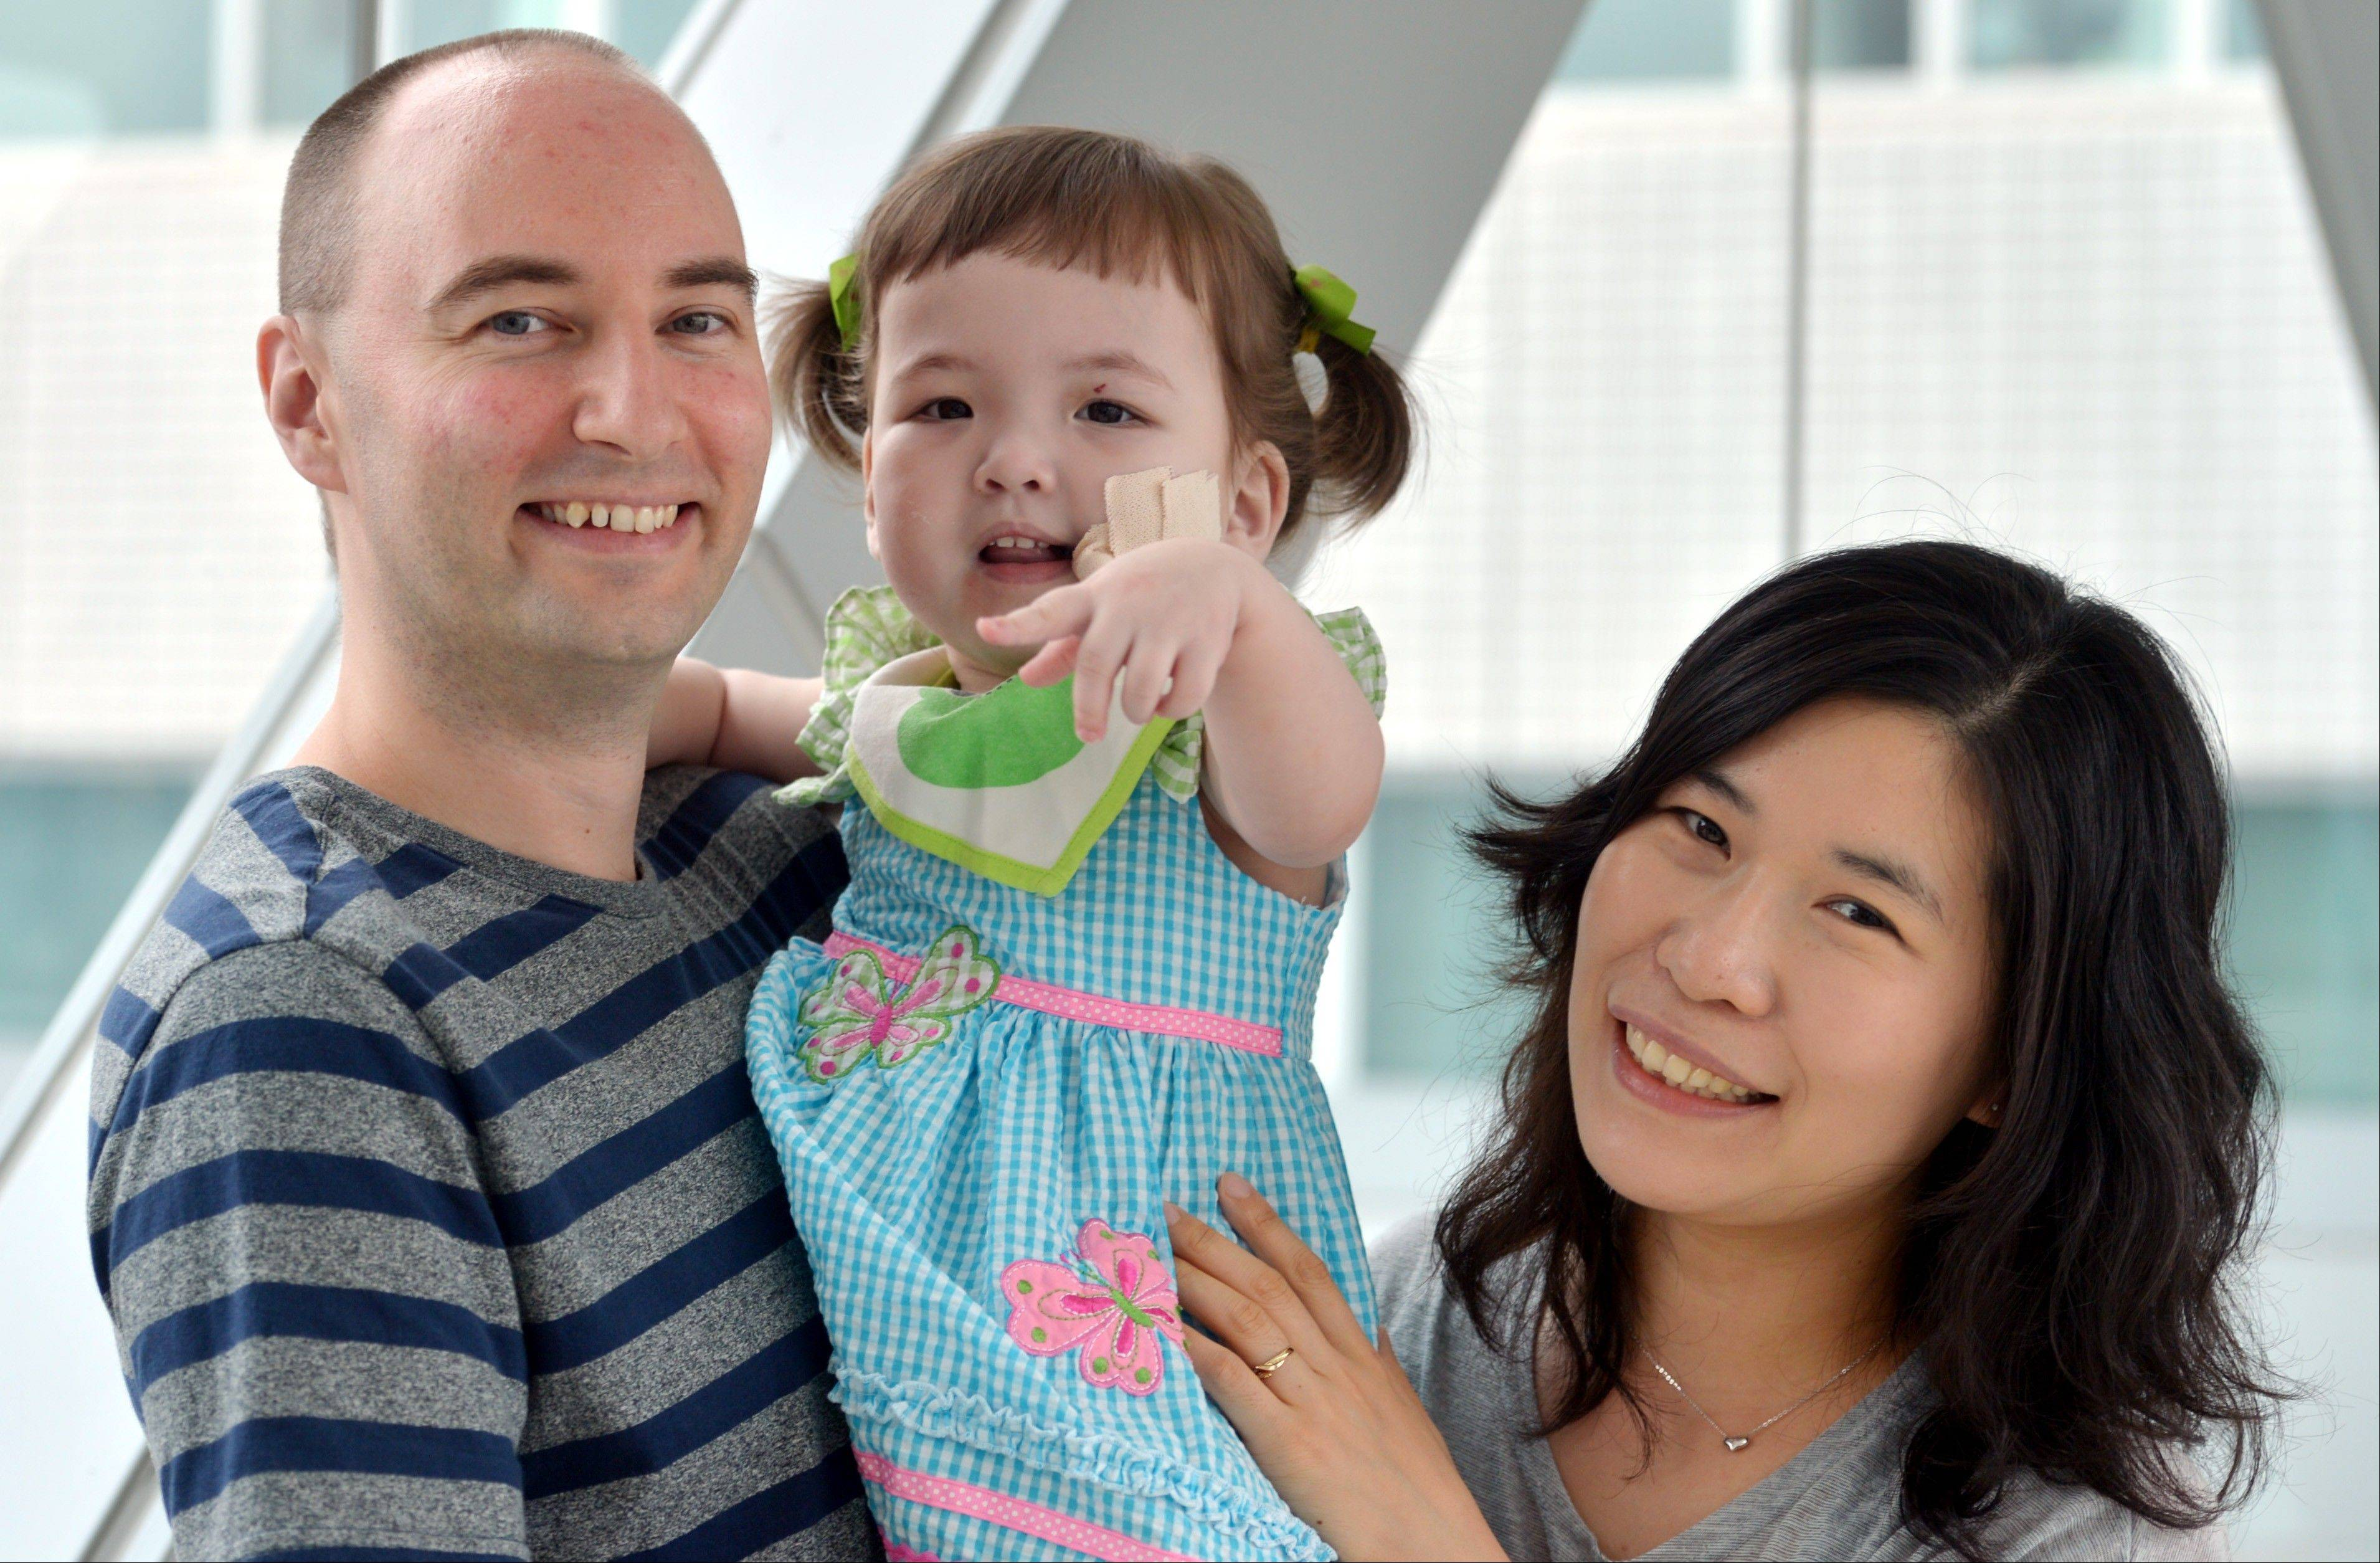 In this 2012 photo, Hannah Warren, 2, poses with her parents Lee Young-mi and Darryl Warren at Seoul National University Hospital in Seoul, South Korea. Hannah received a new windpipe made from her own stem cells in a landmark operation on April 9 at Children's Hospital of Illinois in Peoria.